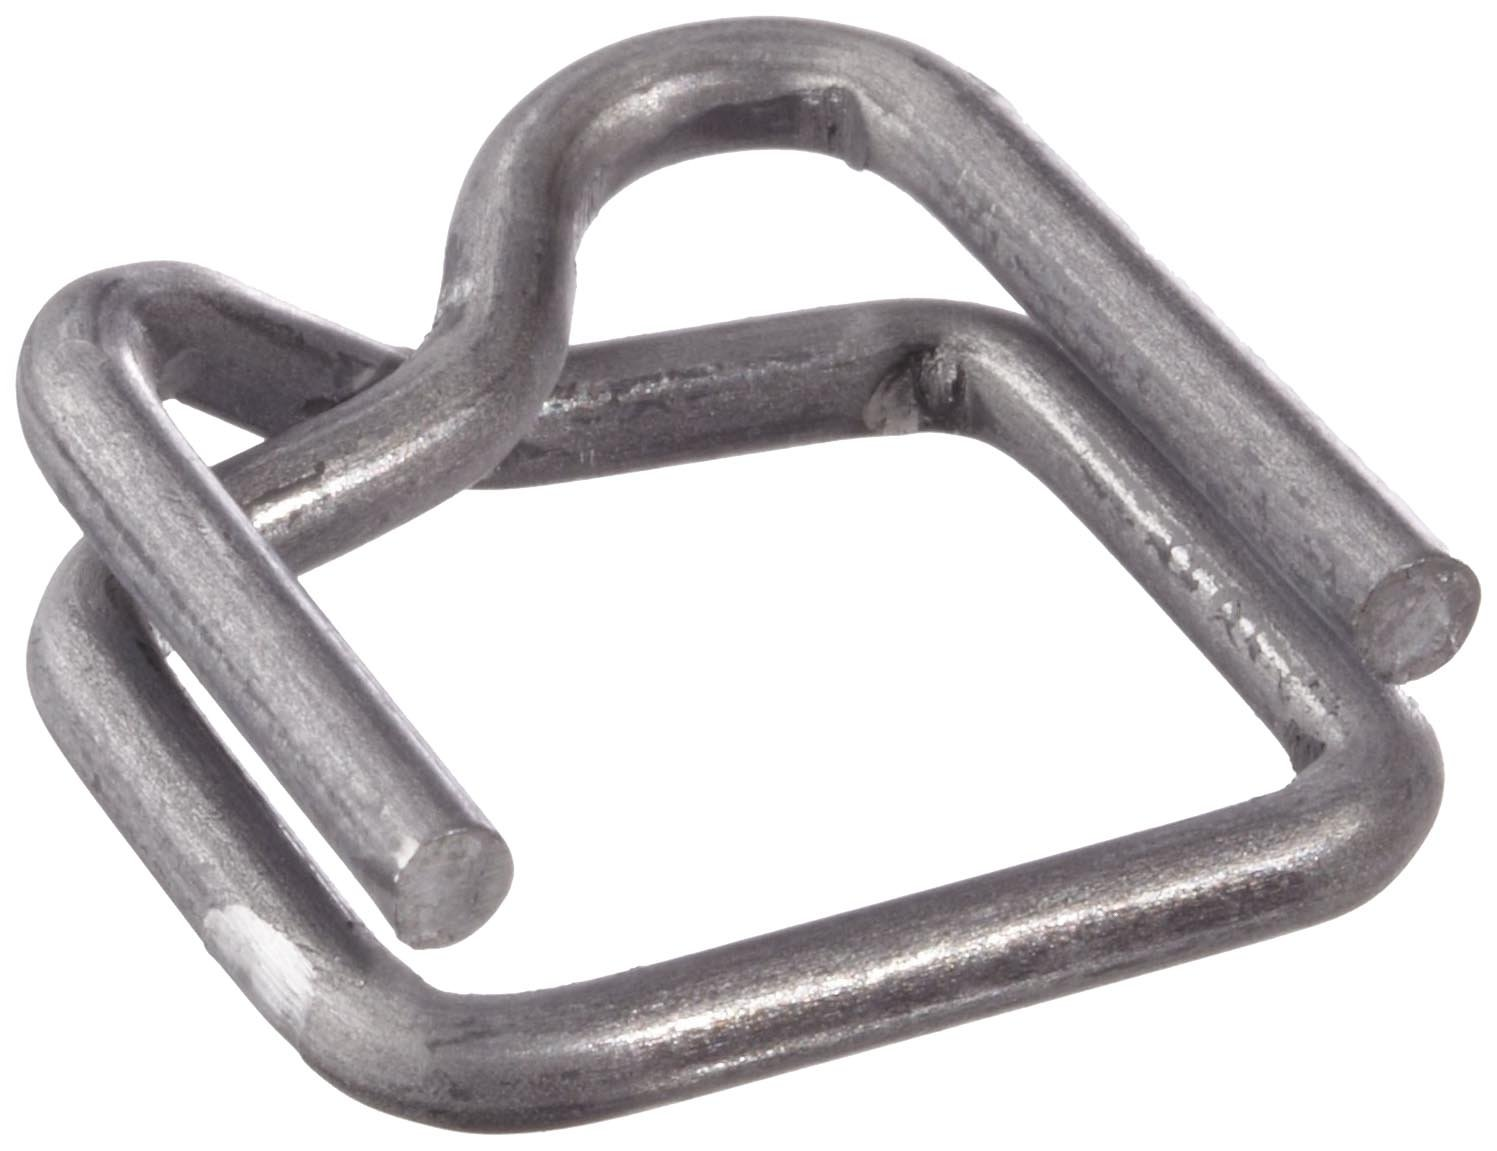 PAC Strapping B-4A 1/2'' Wire Buckle, 1000 Count by PAC Strapping Products